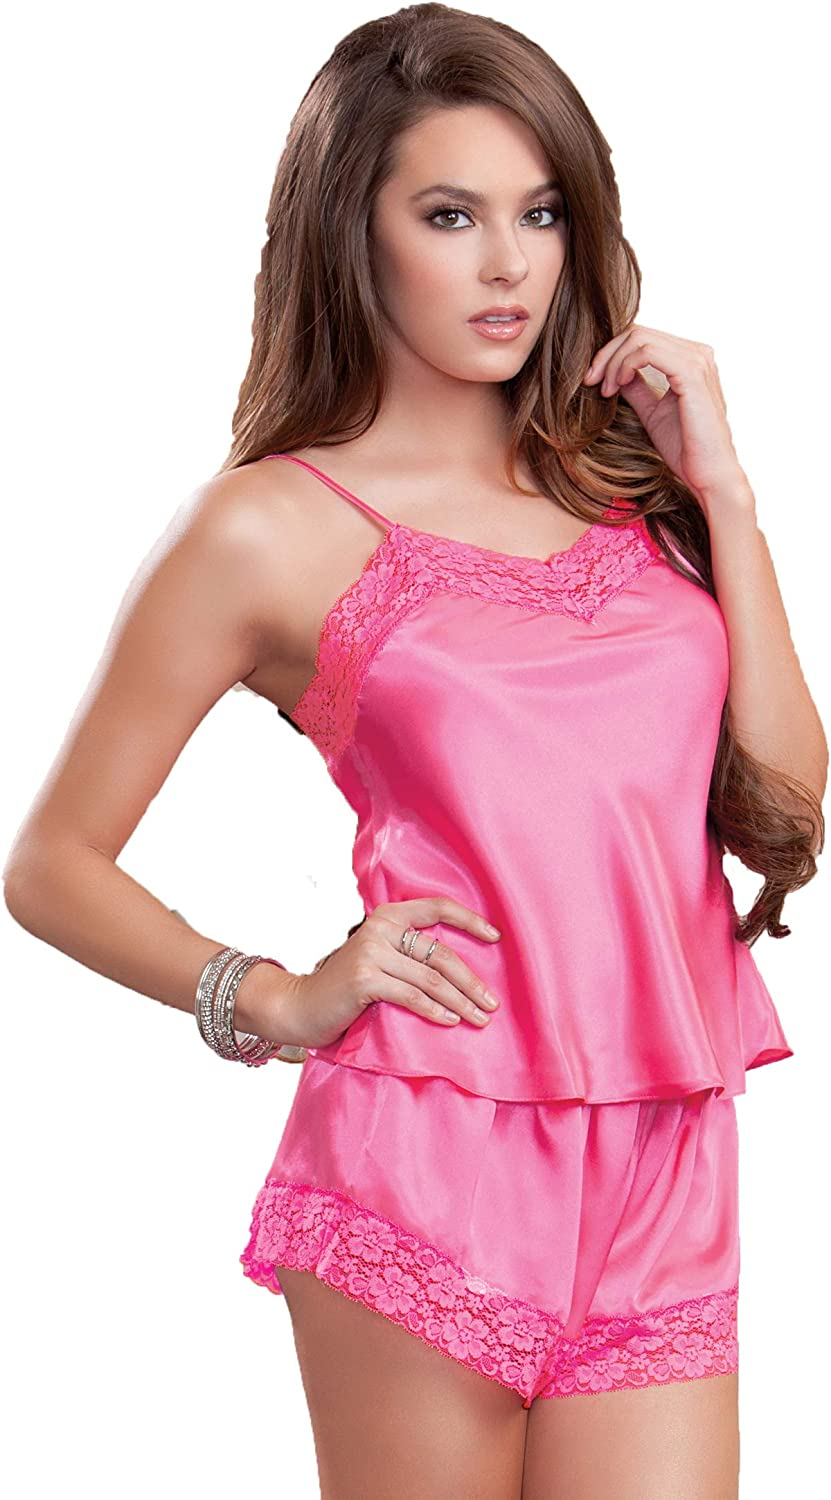 iCollection Women's Satin and Lace Cami and Short Set: Clothing